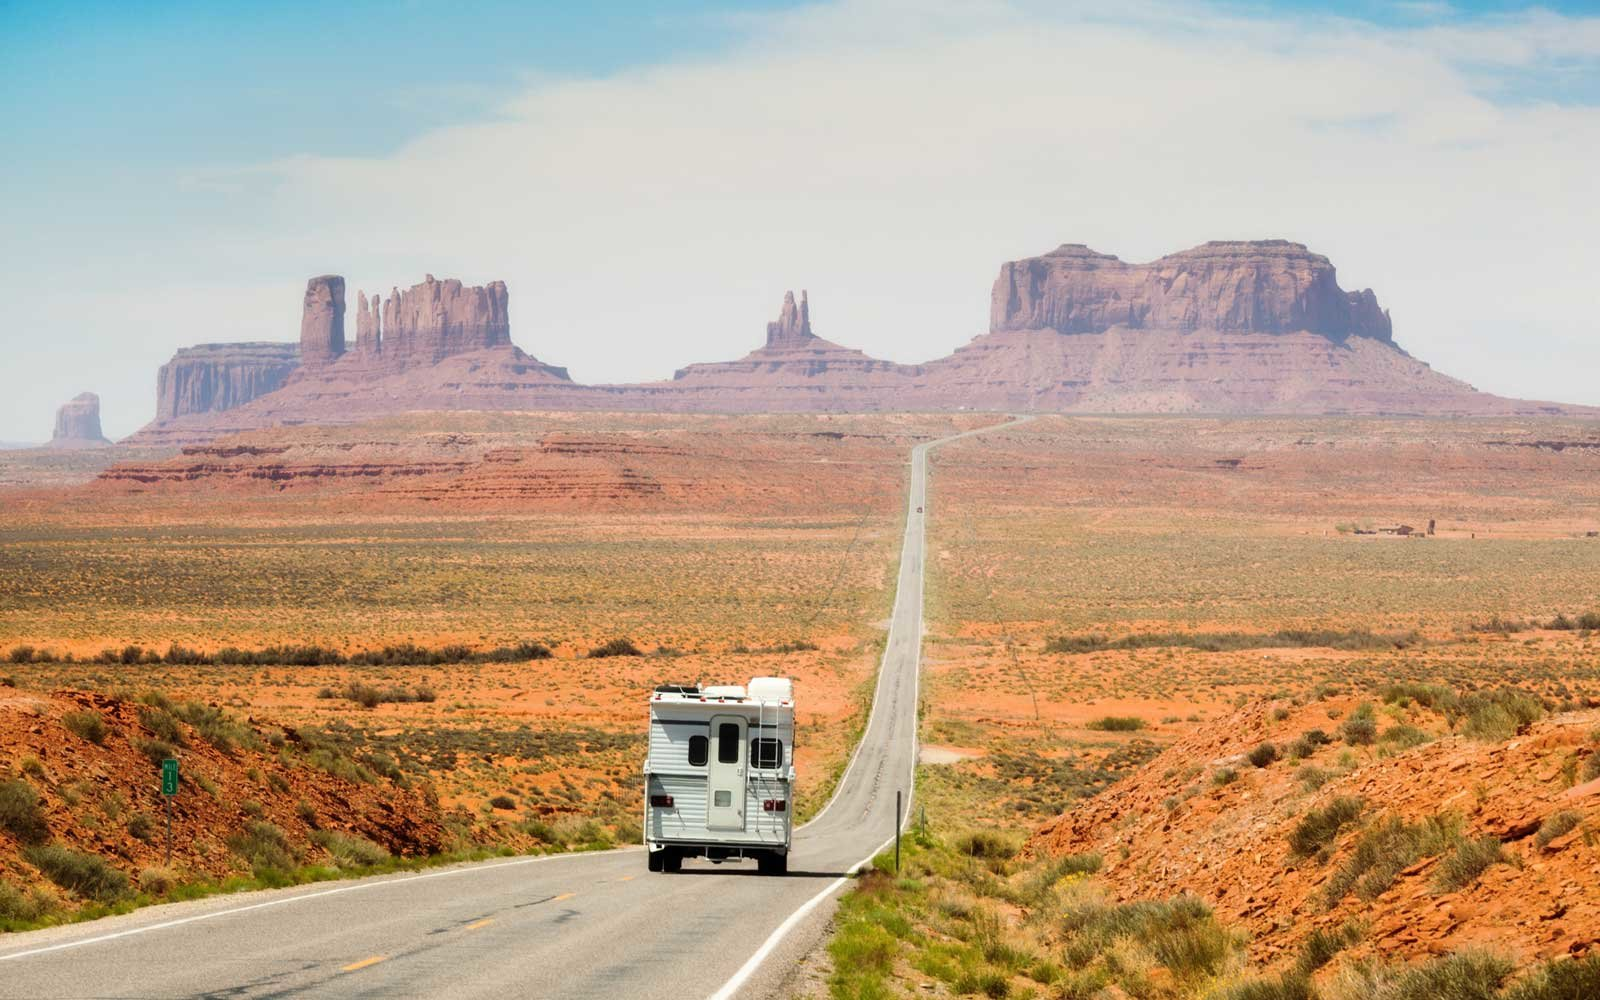 Camper Touring the American Southwest Monument Valley